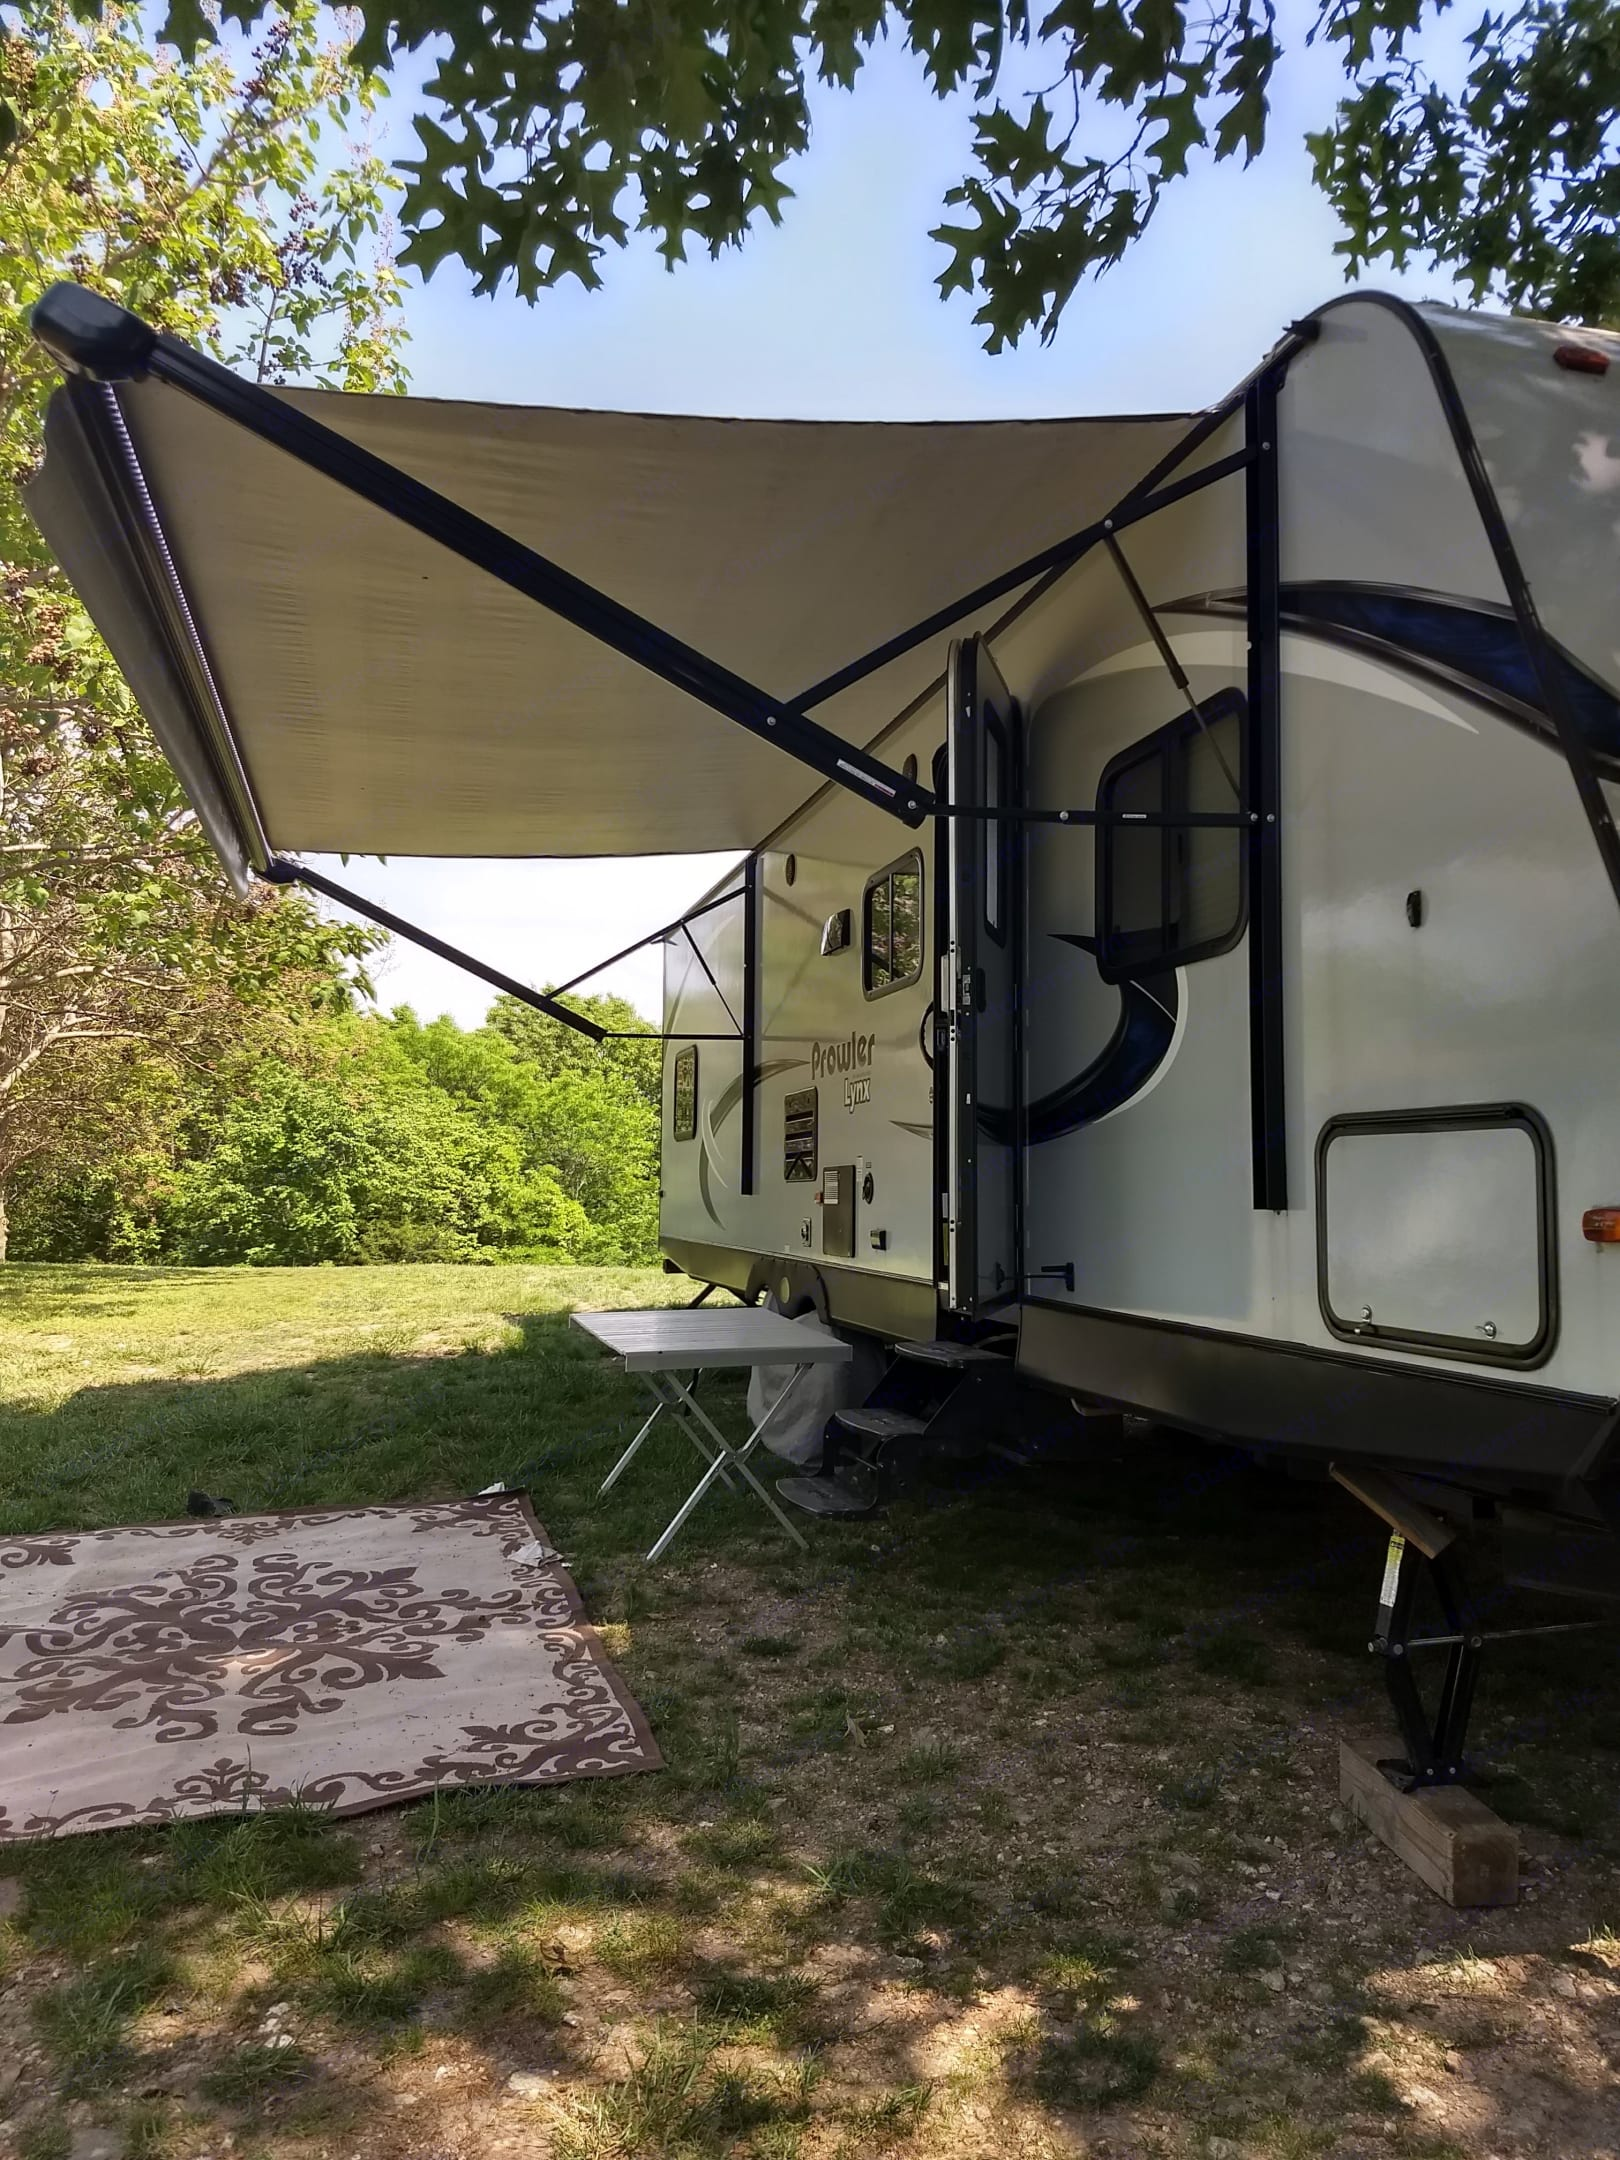 Owning comes out tilts also has LED lighting also a little small table that goes outside the door for camping. prowler Lynx lx30 2018